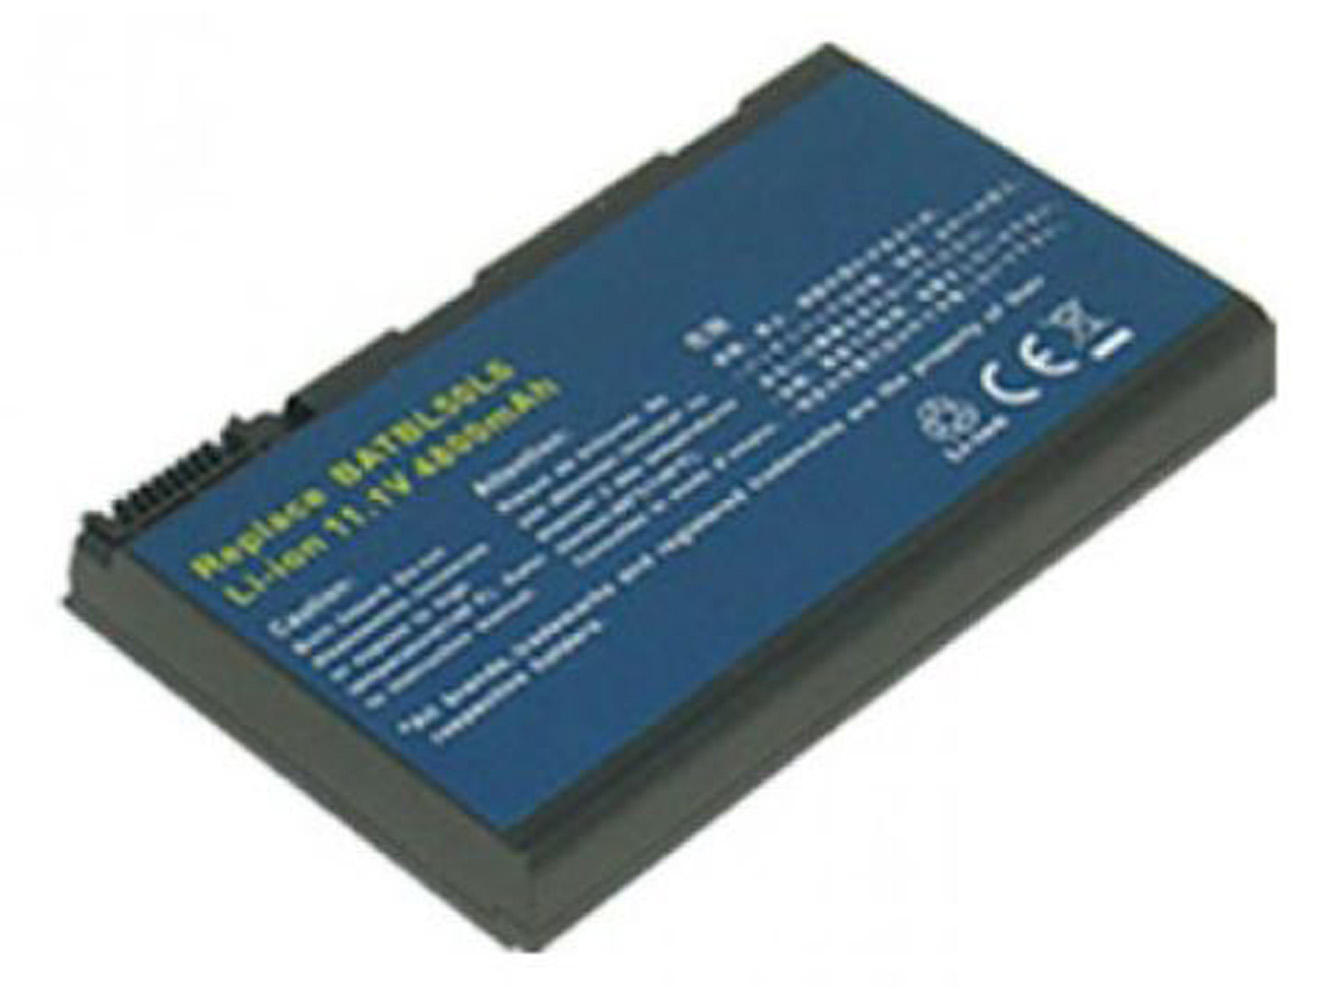 Replacement for ACER Travelmate 2450, TravelMate 4283WLM, ACER Aspire 3100, 3690, 5100, 5110, 5515, 5610, 5630, 5650, 5680 Series, ACER TravelMate 2490, 4200, 4230 Series Laptop Battery